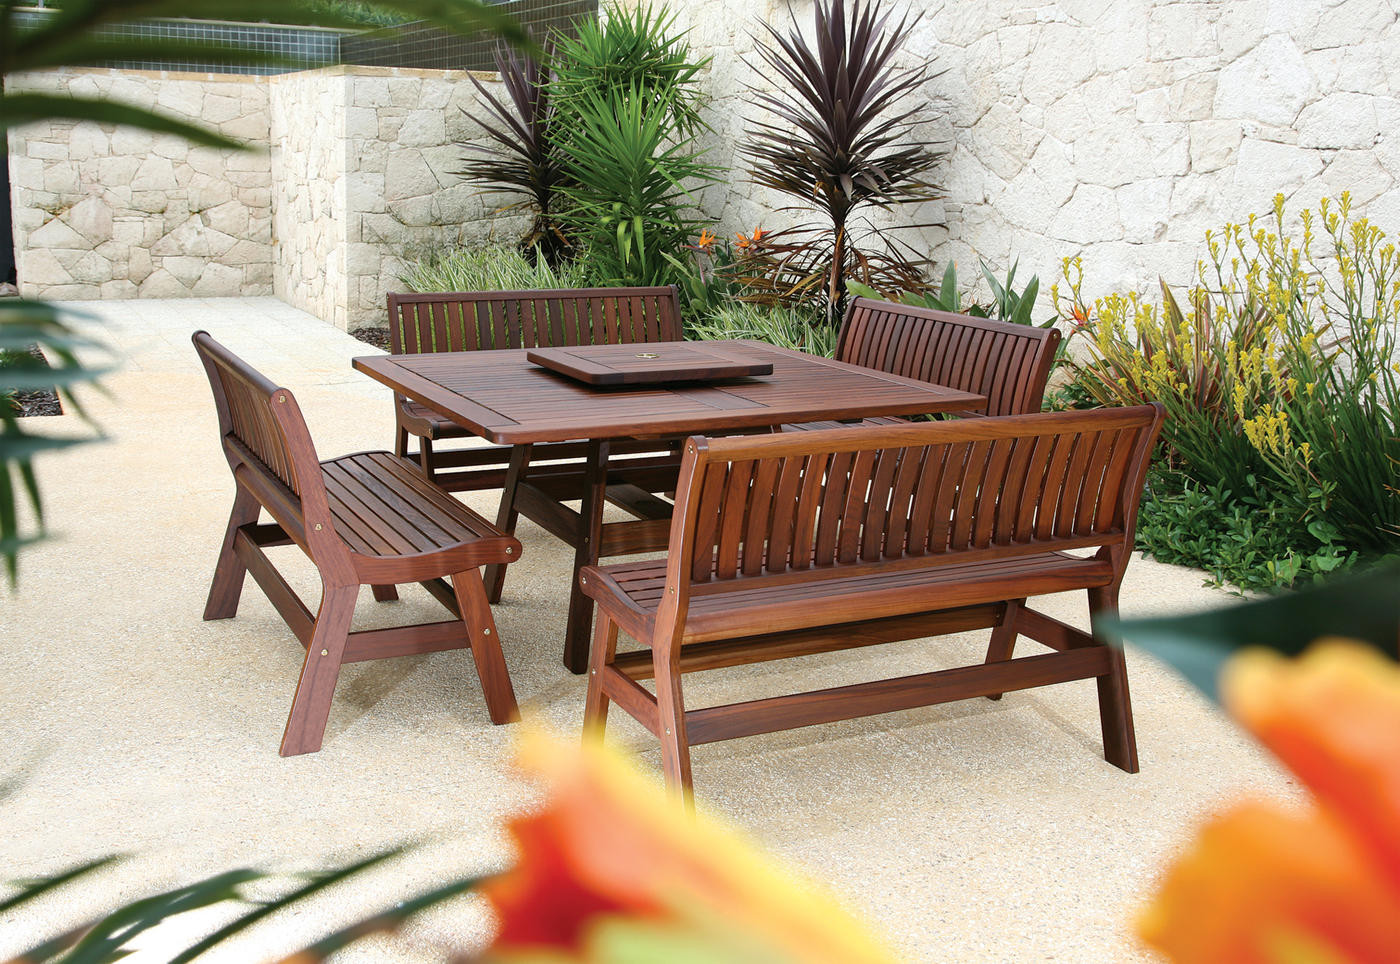 Best ideas about Wooden Patio Furniture . Save or Pin Restore a Teak Dining TableTEAK FURNITURES Now.